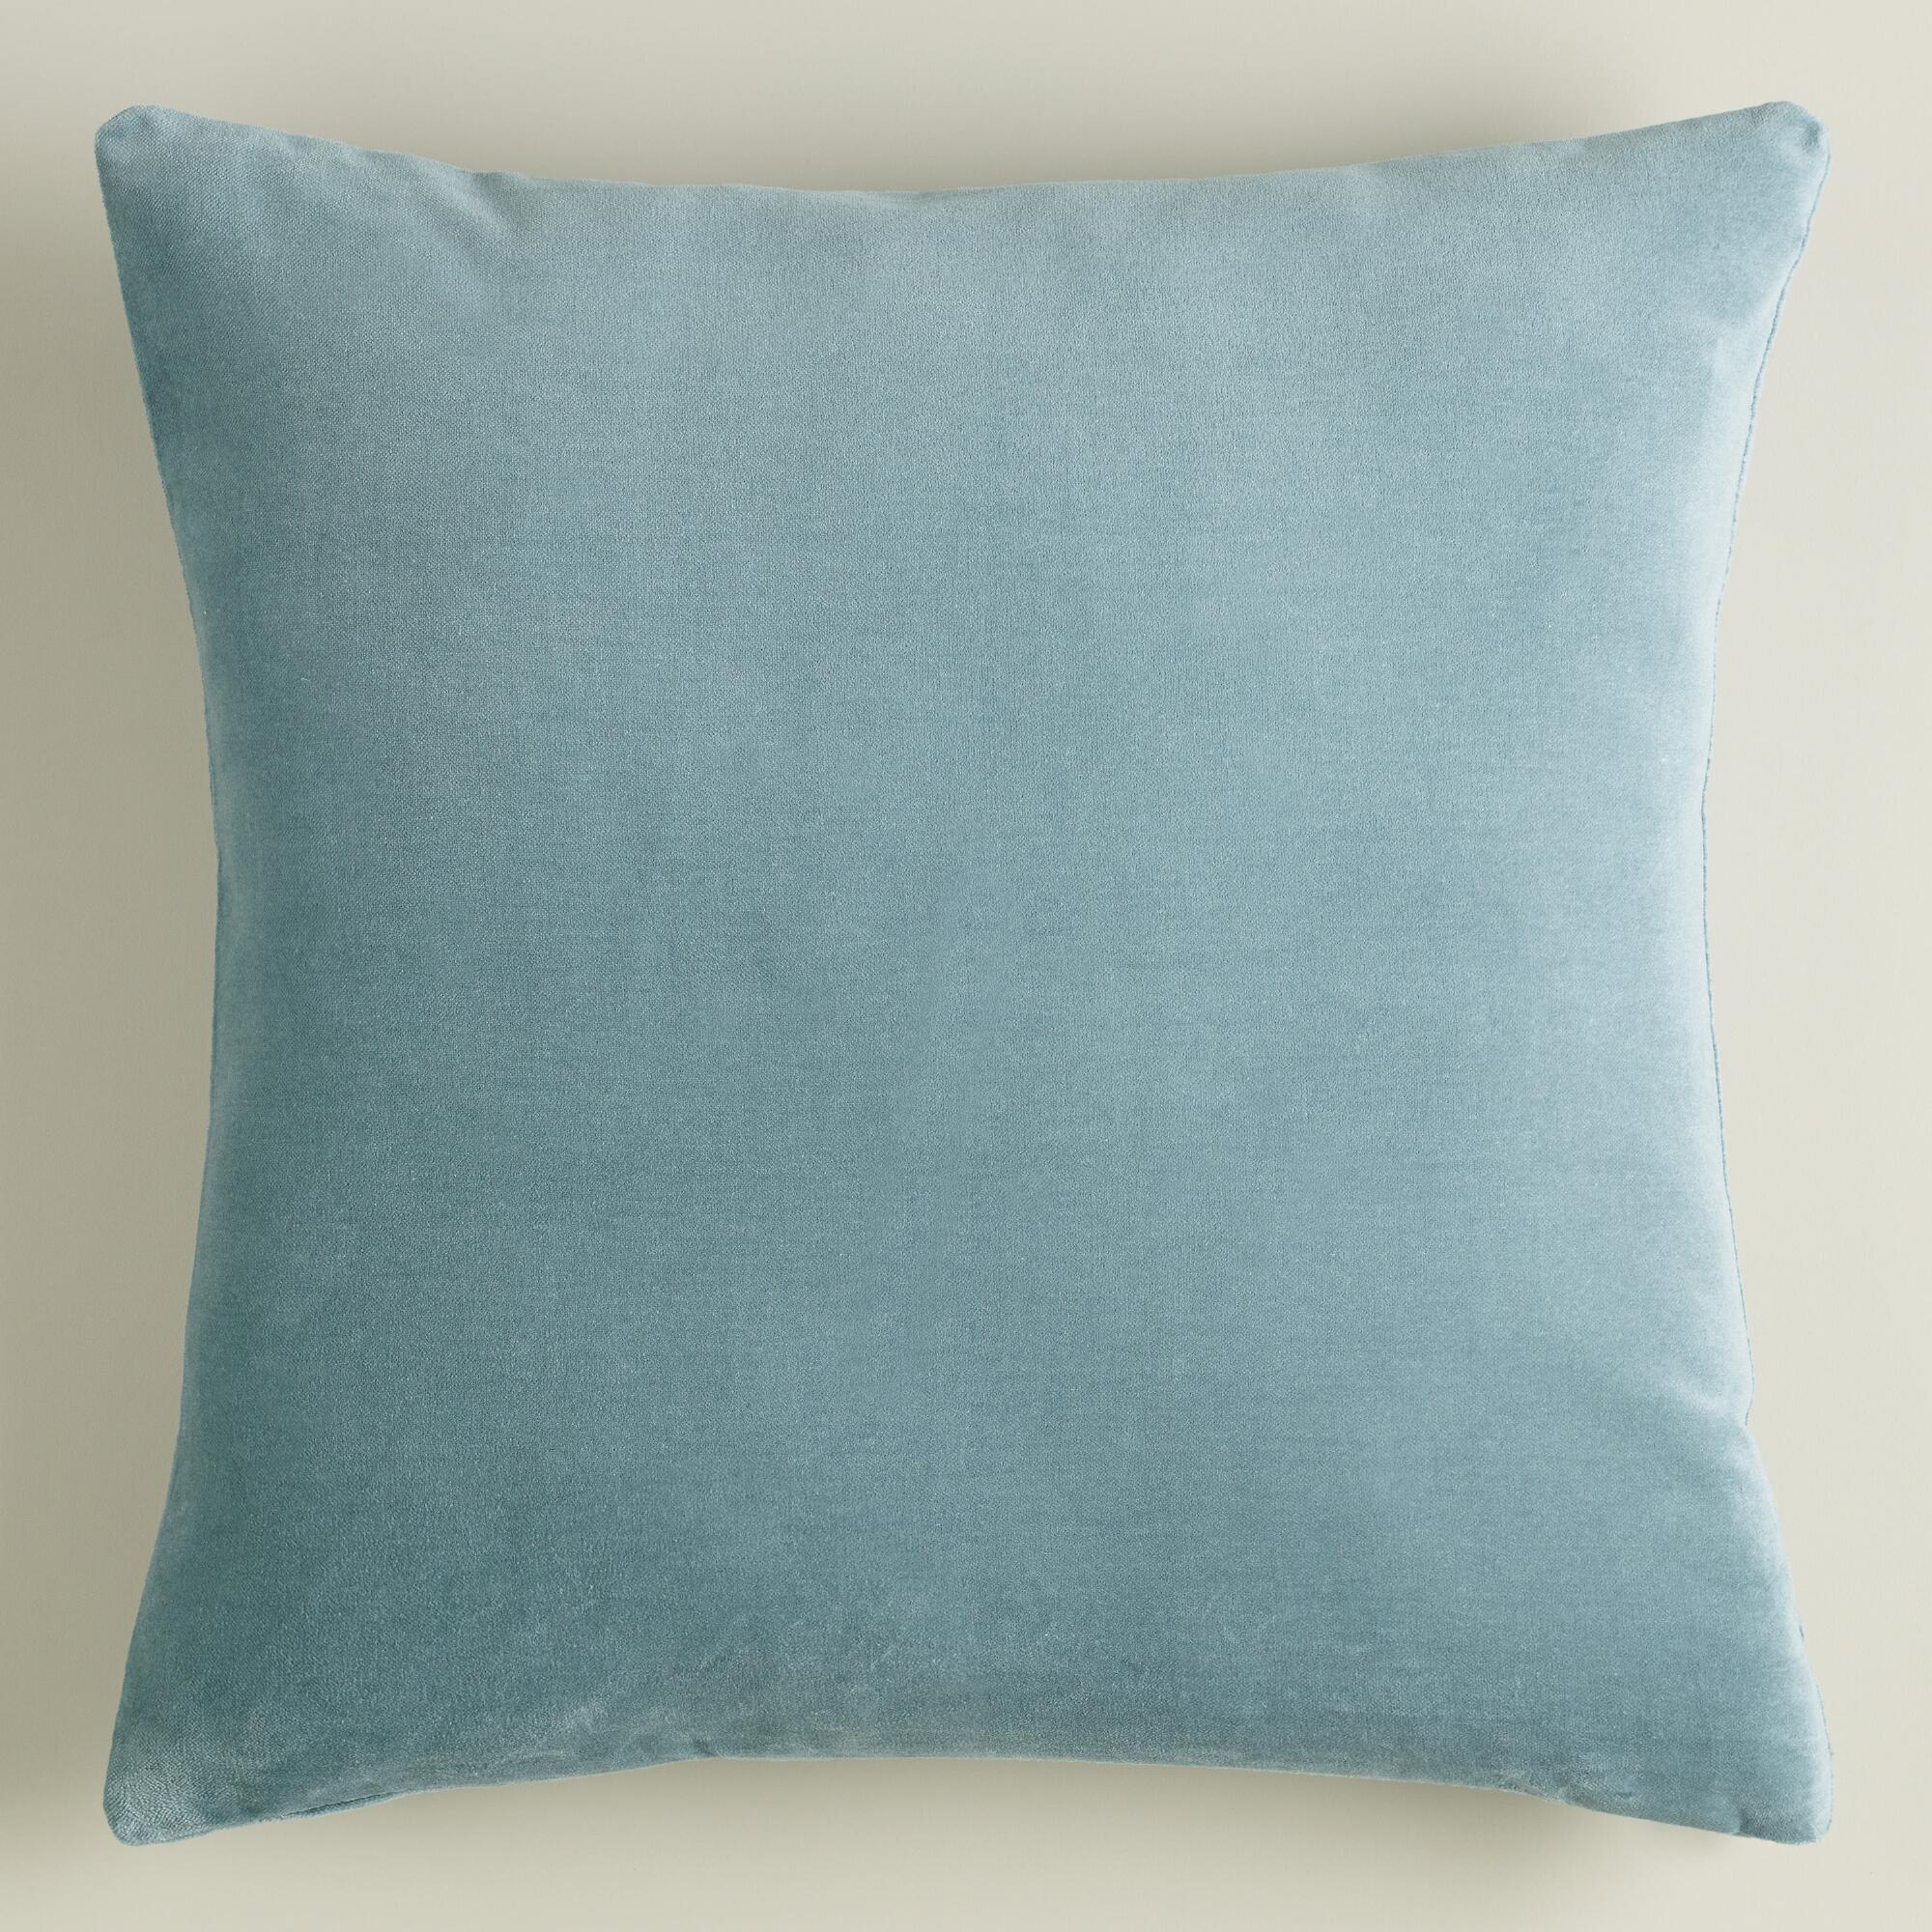 Steel Blue Throw Pillows : Steel Blue Velvet Throw Pillow World Market